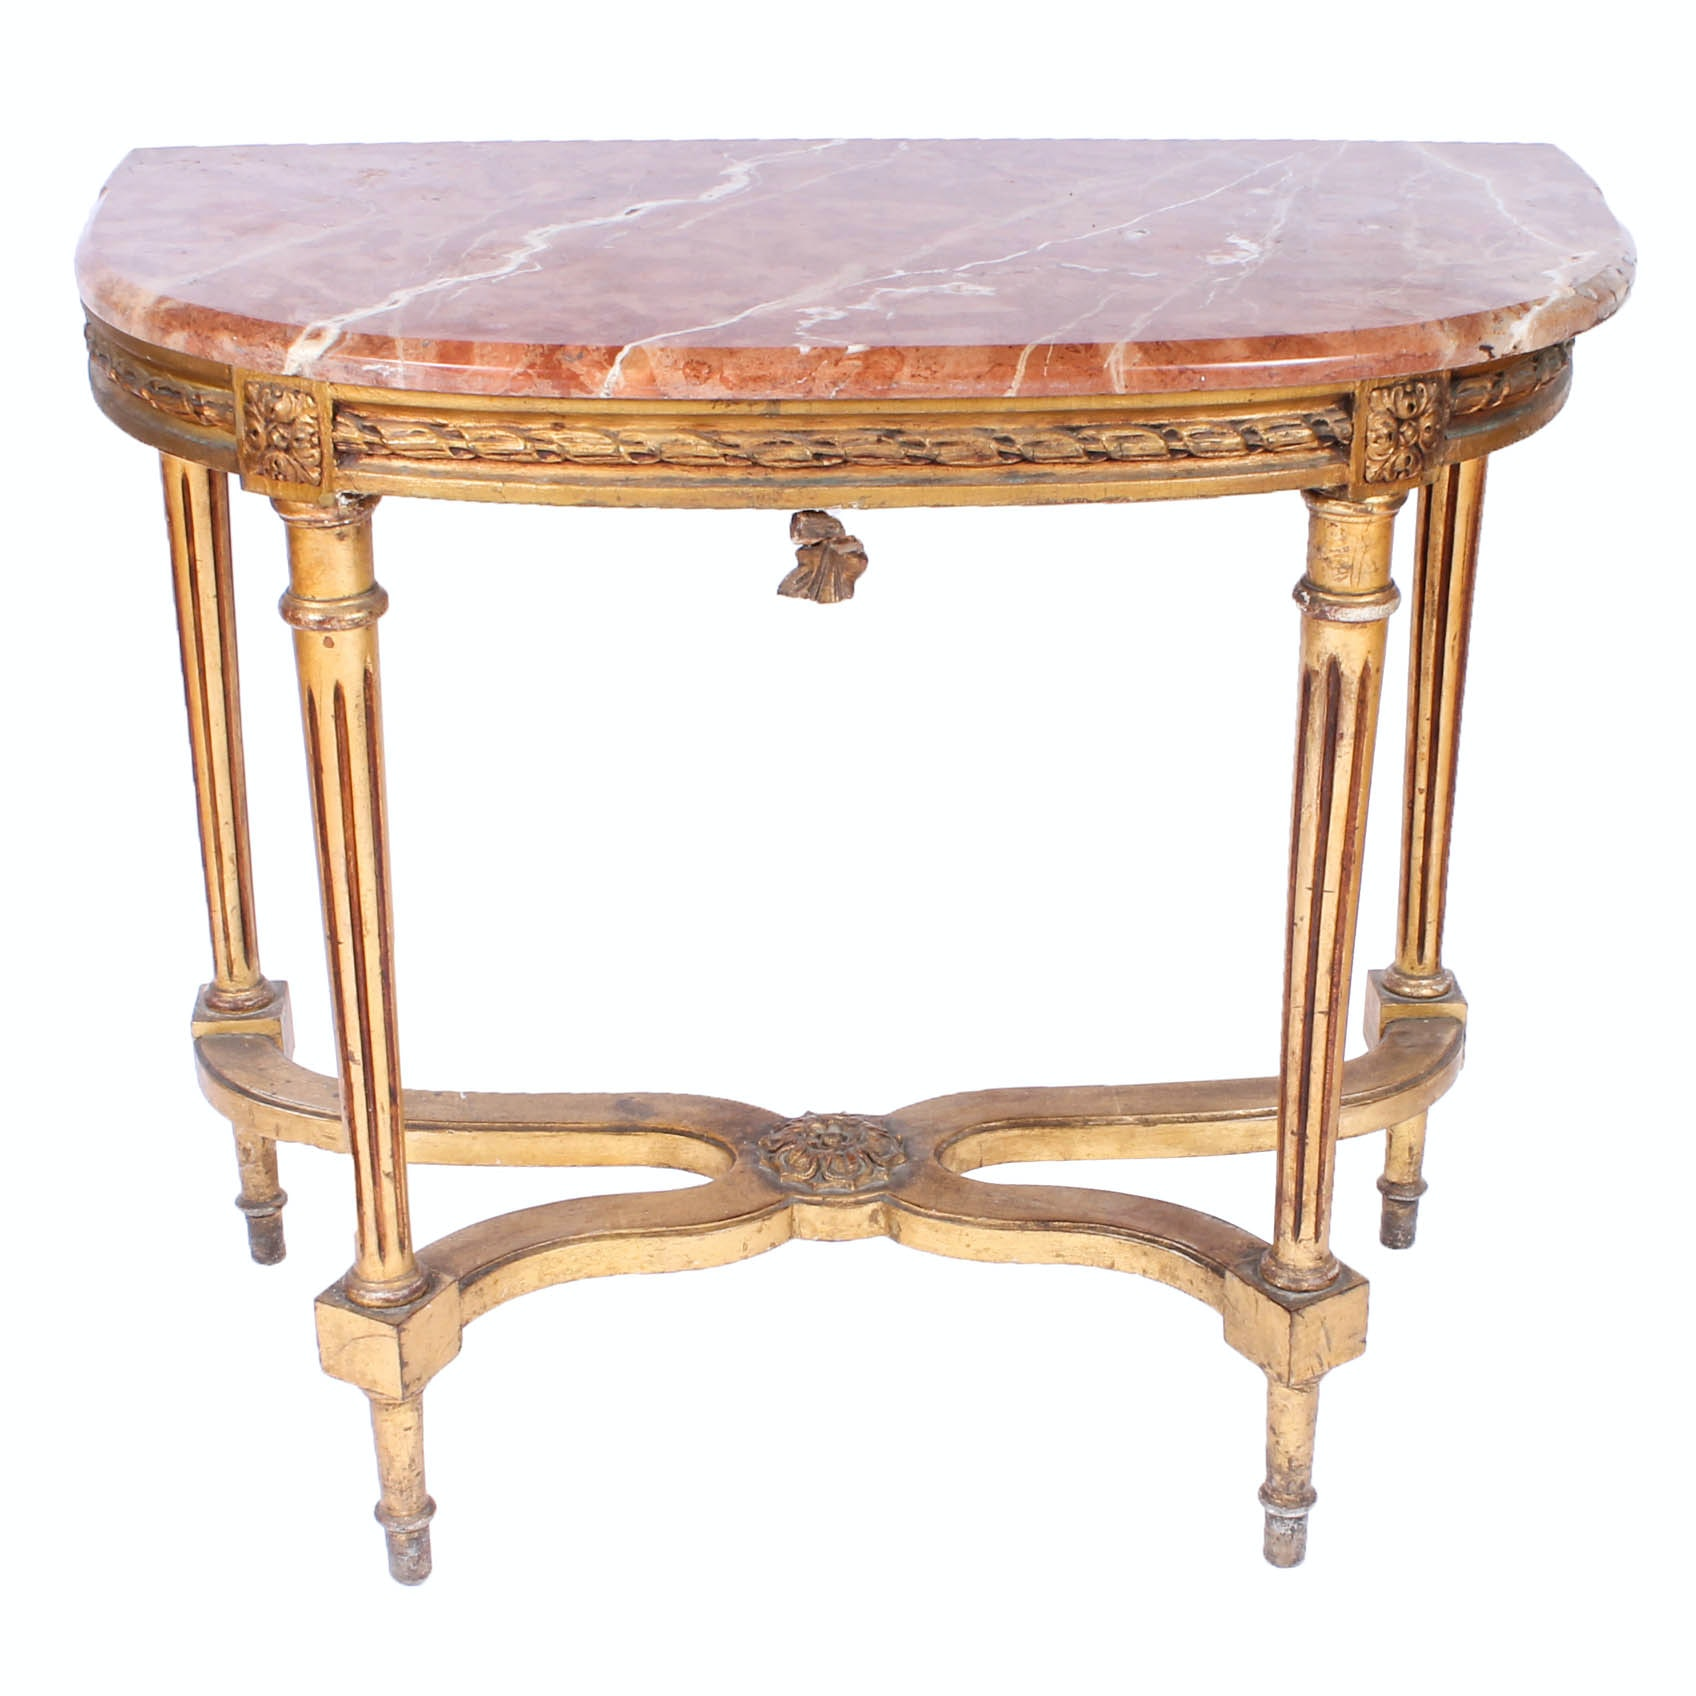 French Directoire-Style Marble Topped Table